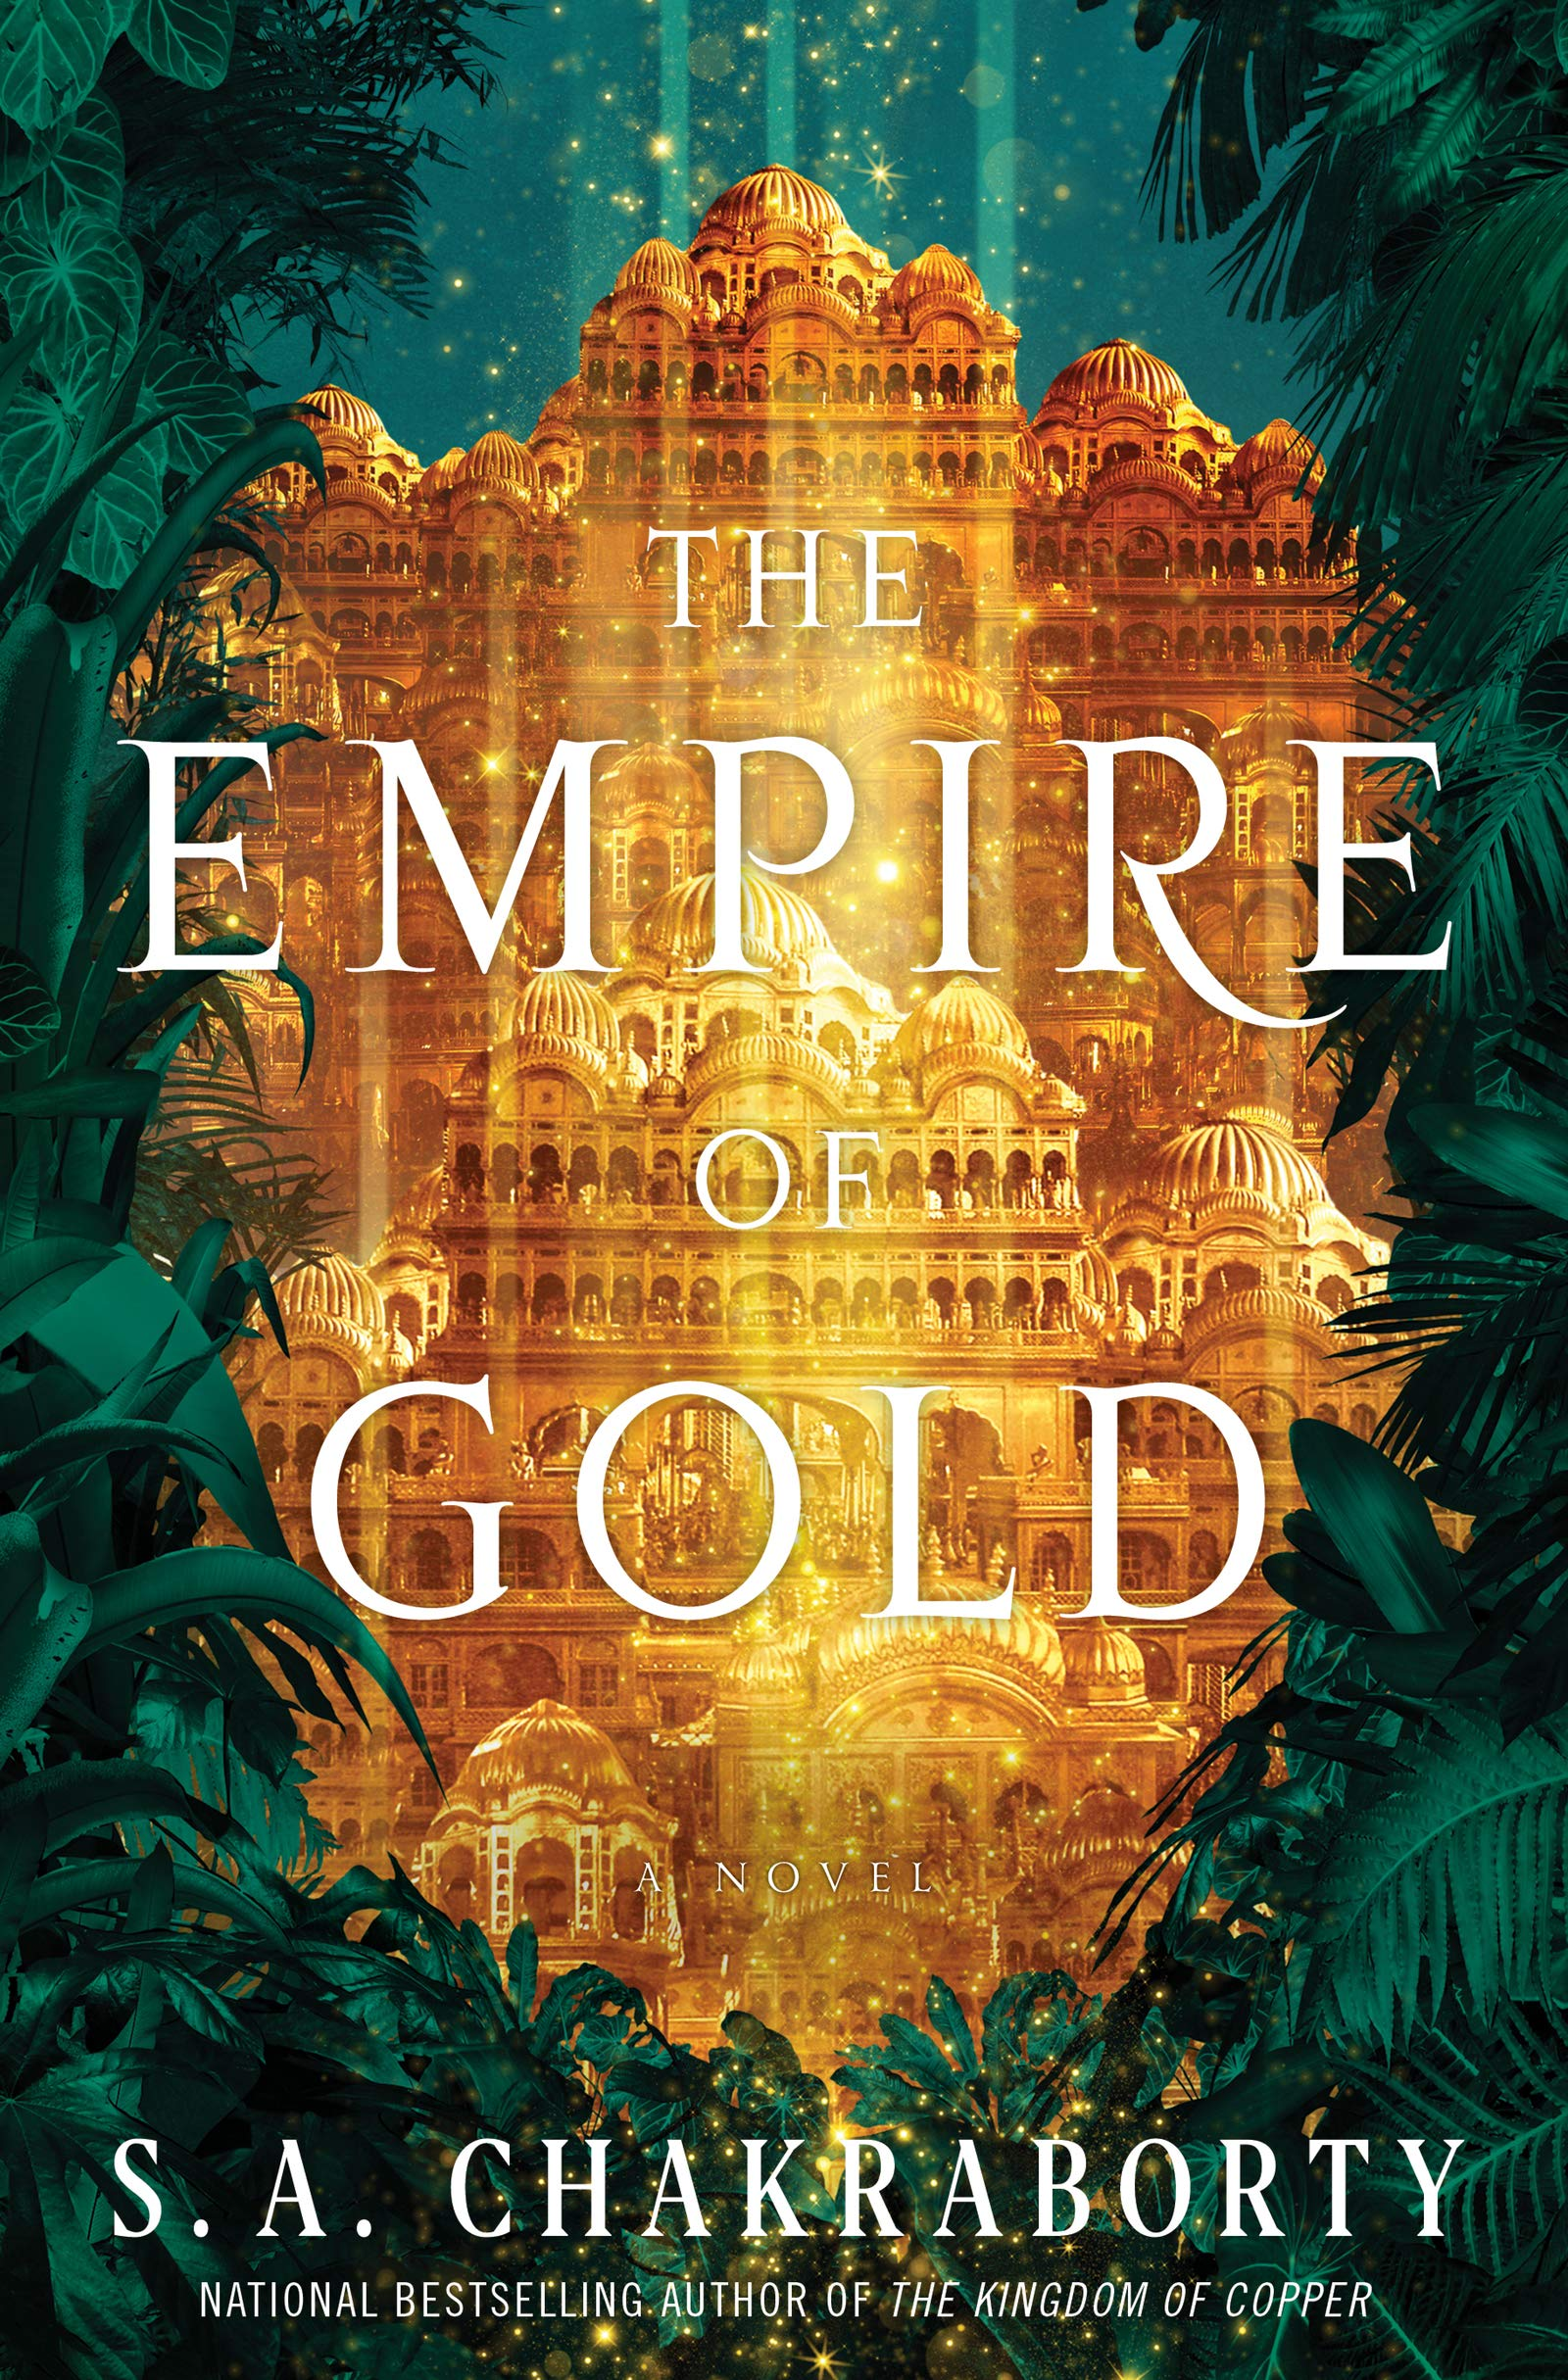 Amazon.com: The Empire of Gold: A Novel (The Daevabad Trilogy ...